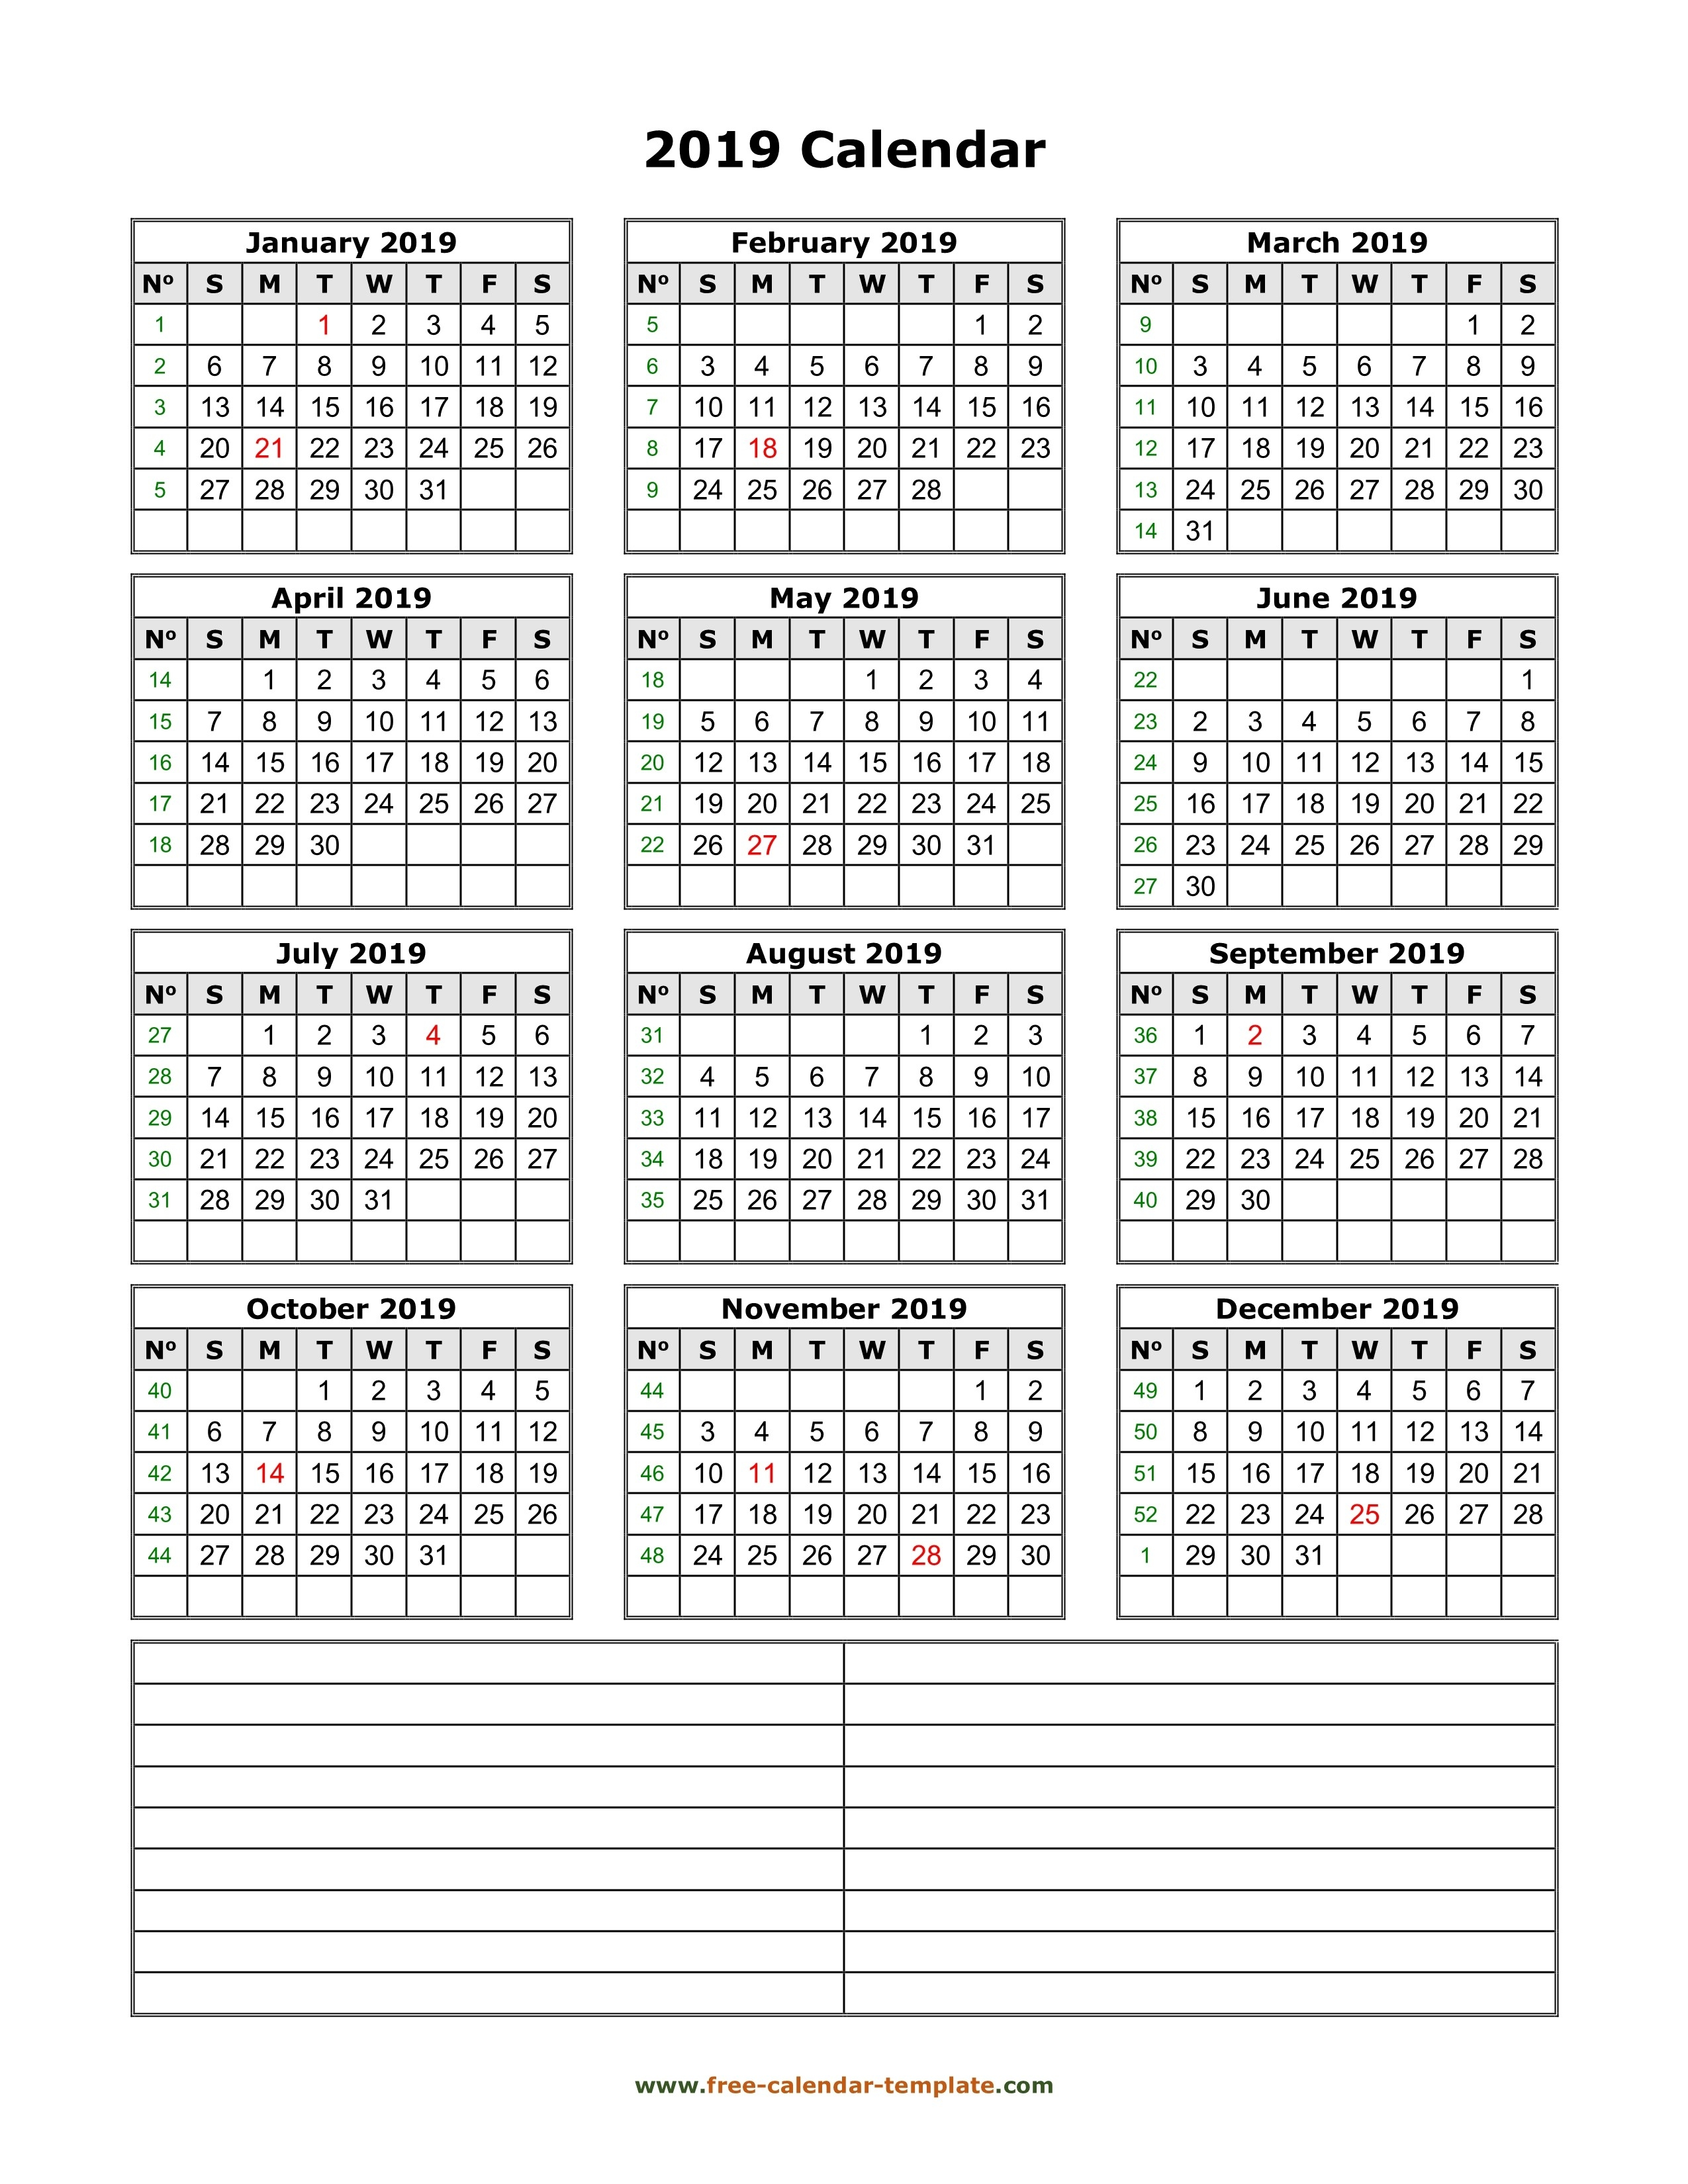 Yearly 2019 Printable Calendar With Space For Notes   Free-Printable Calendar Template With Notes